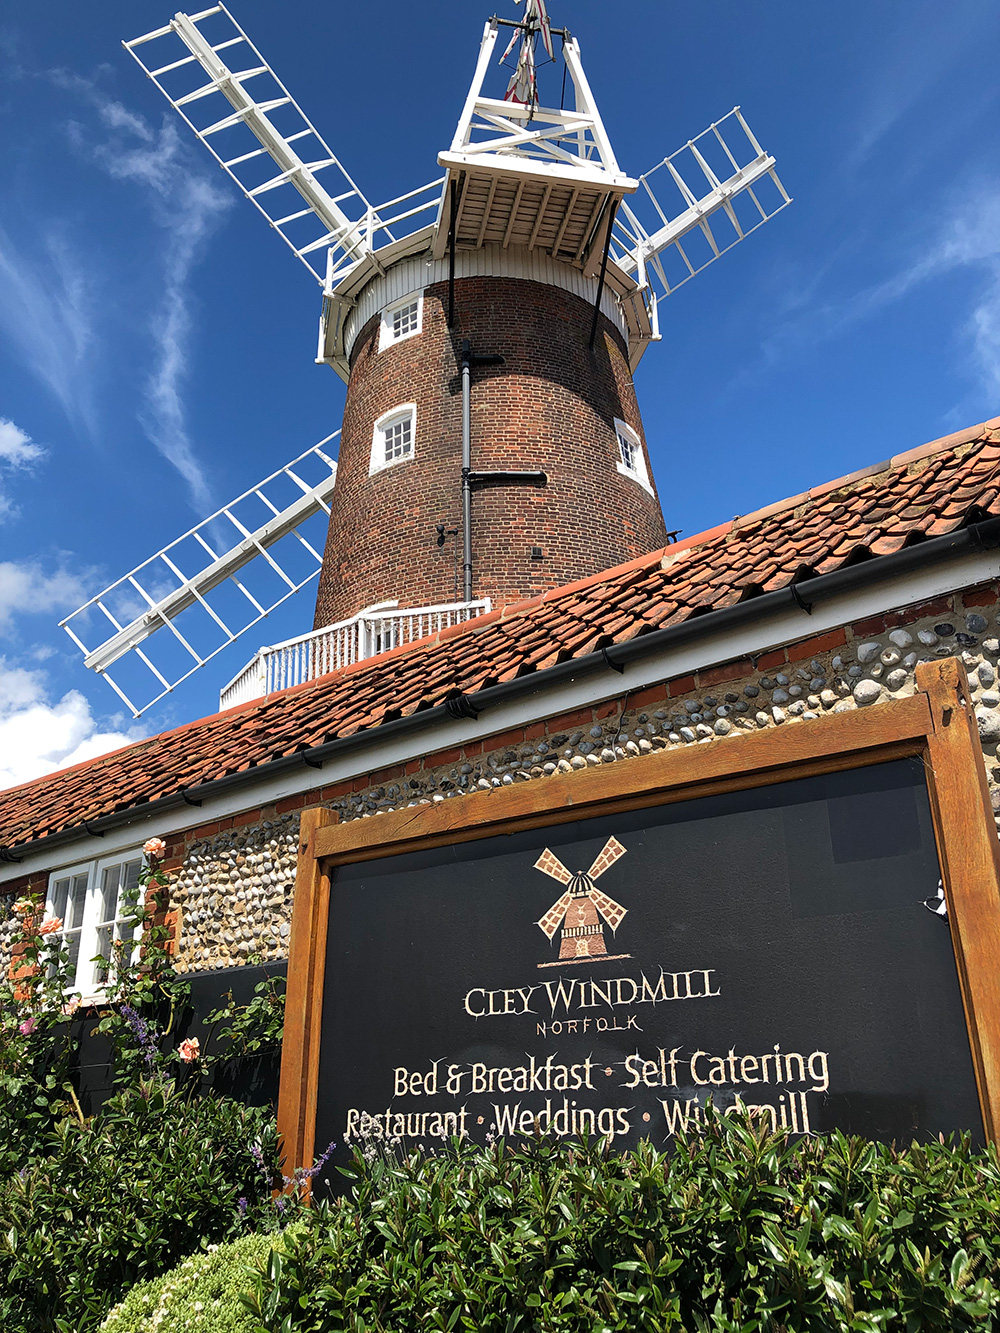 Cley Windmill in Norfolk.